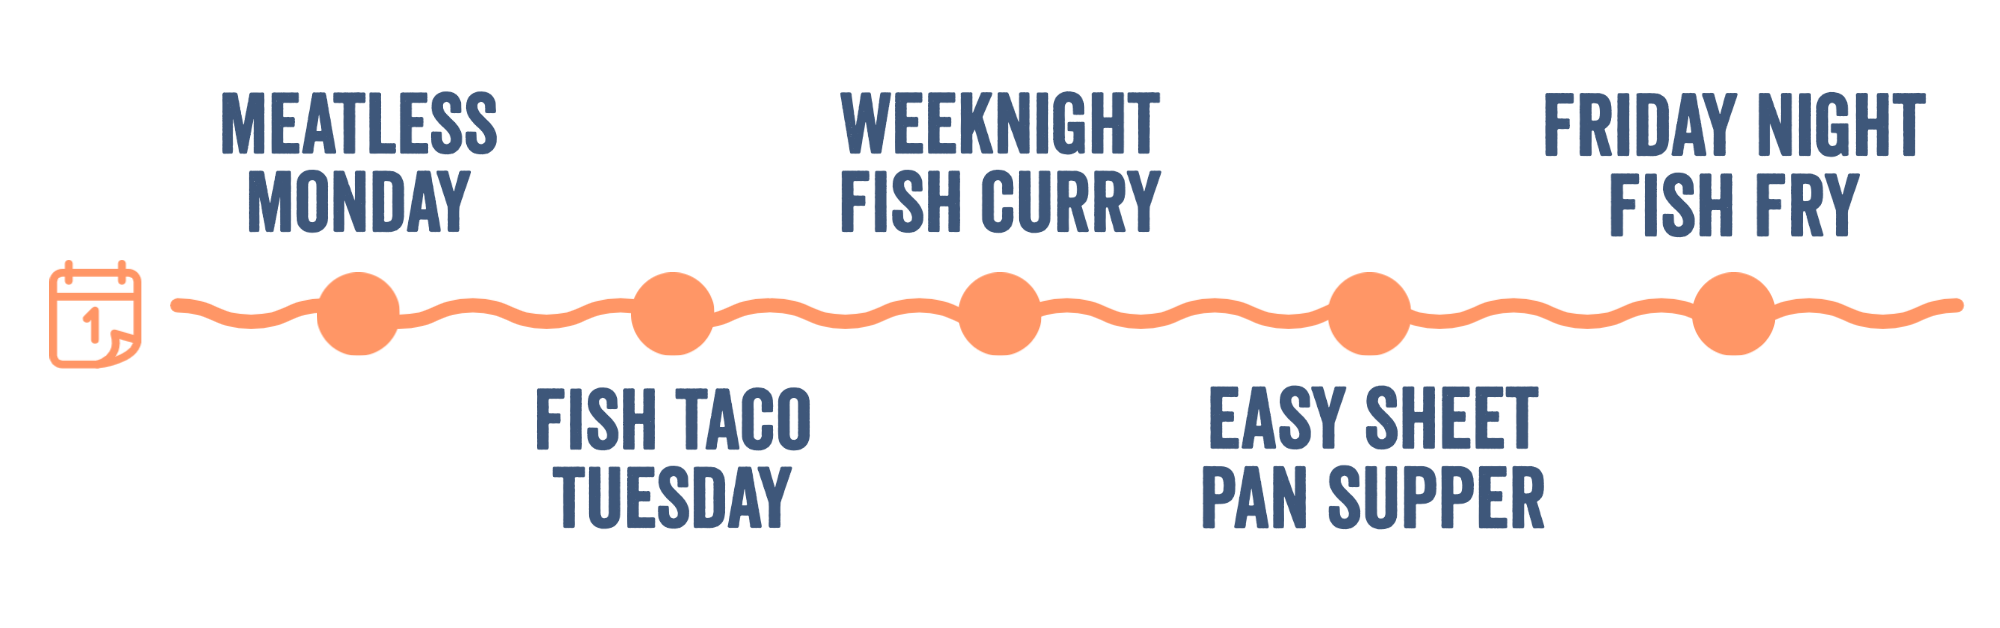 Meal plan for Pacific cod: Meatless Monday, Taco Tuesday, Fish Curry Wednesday, Sheet Pan Thursday, Friday Fish Fry